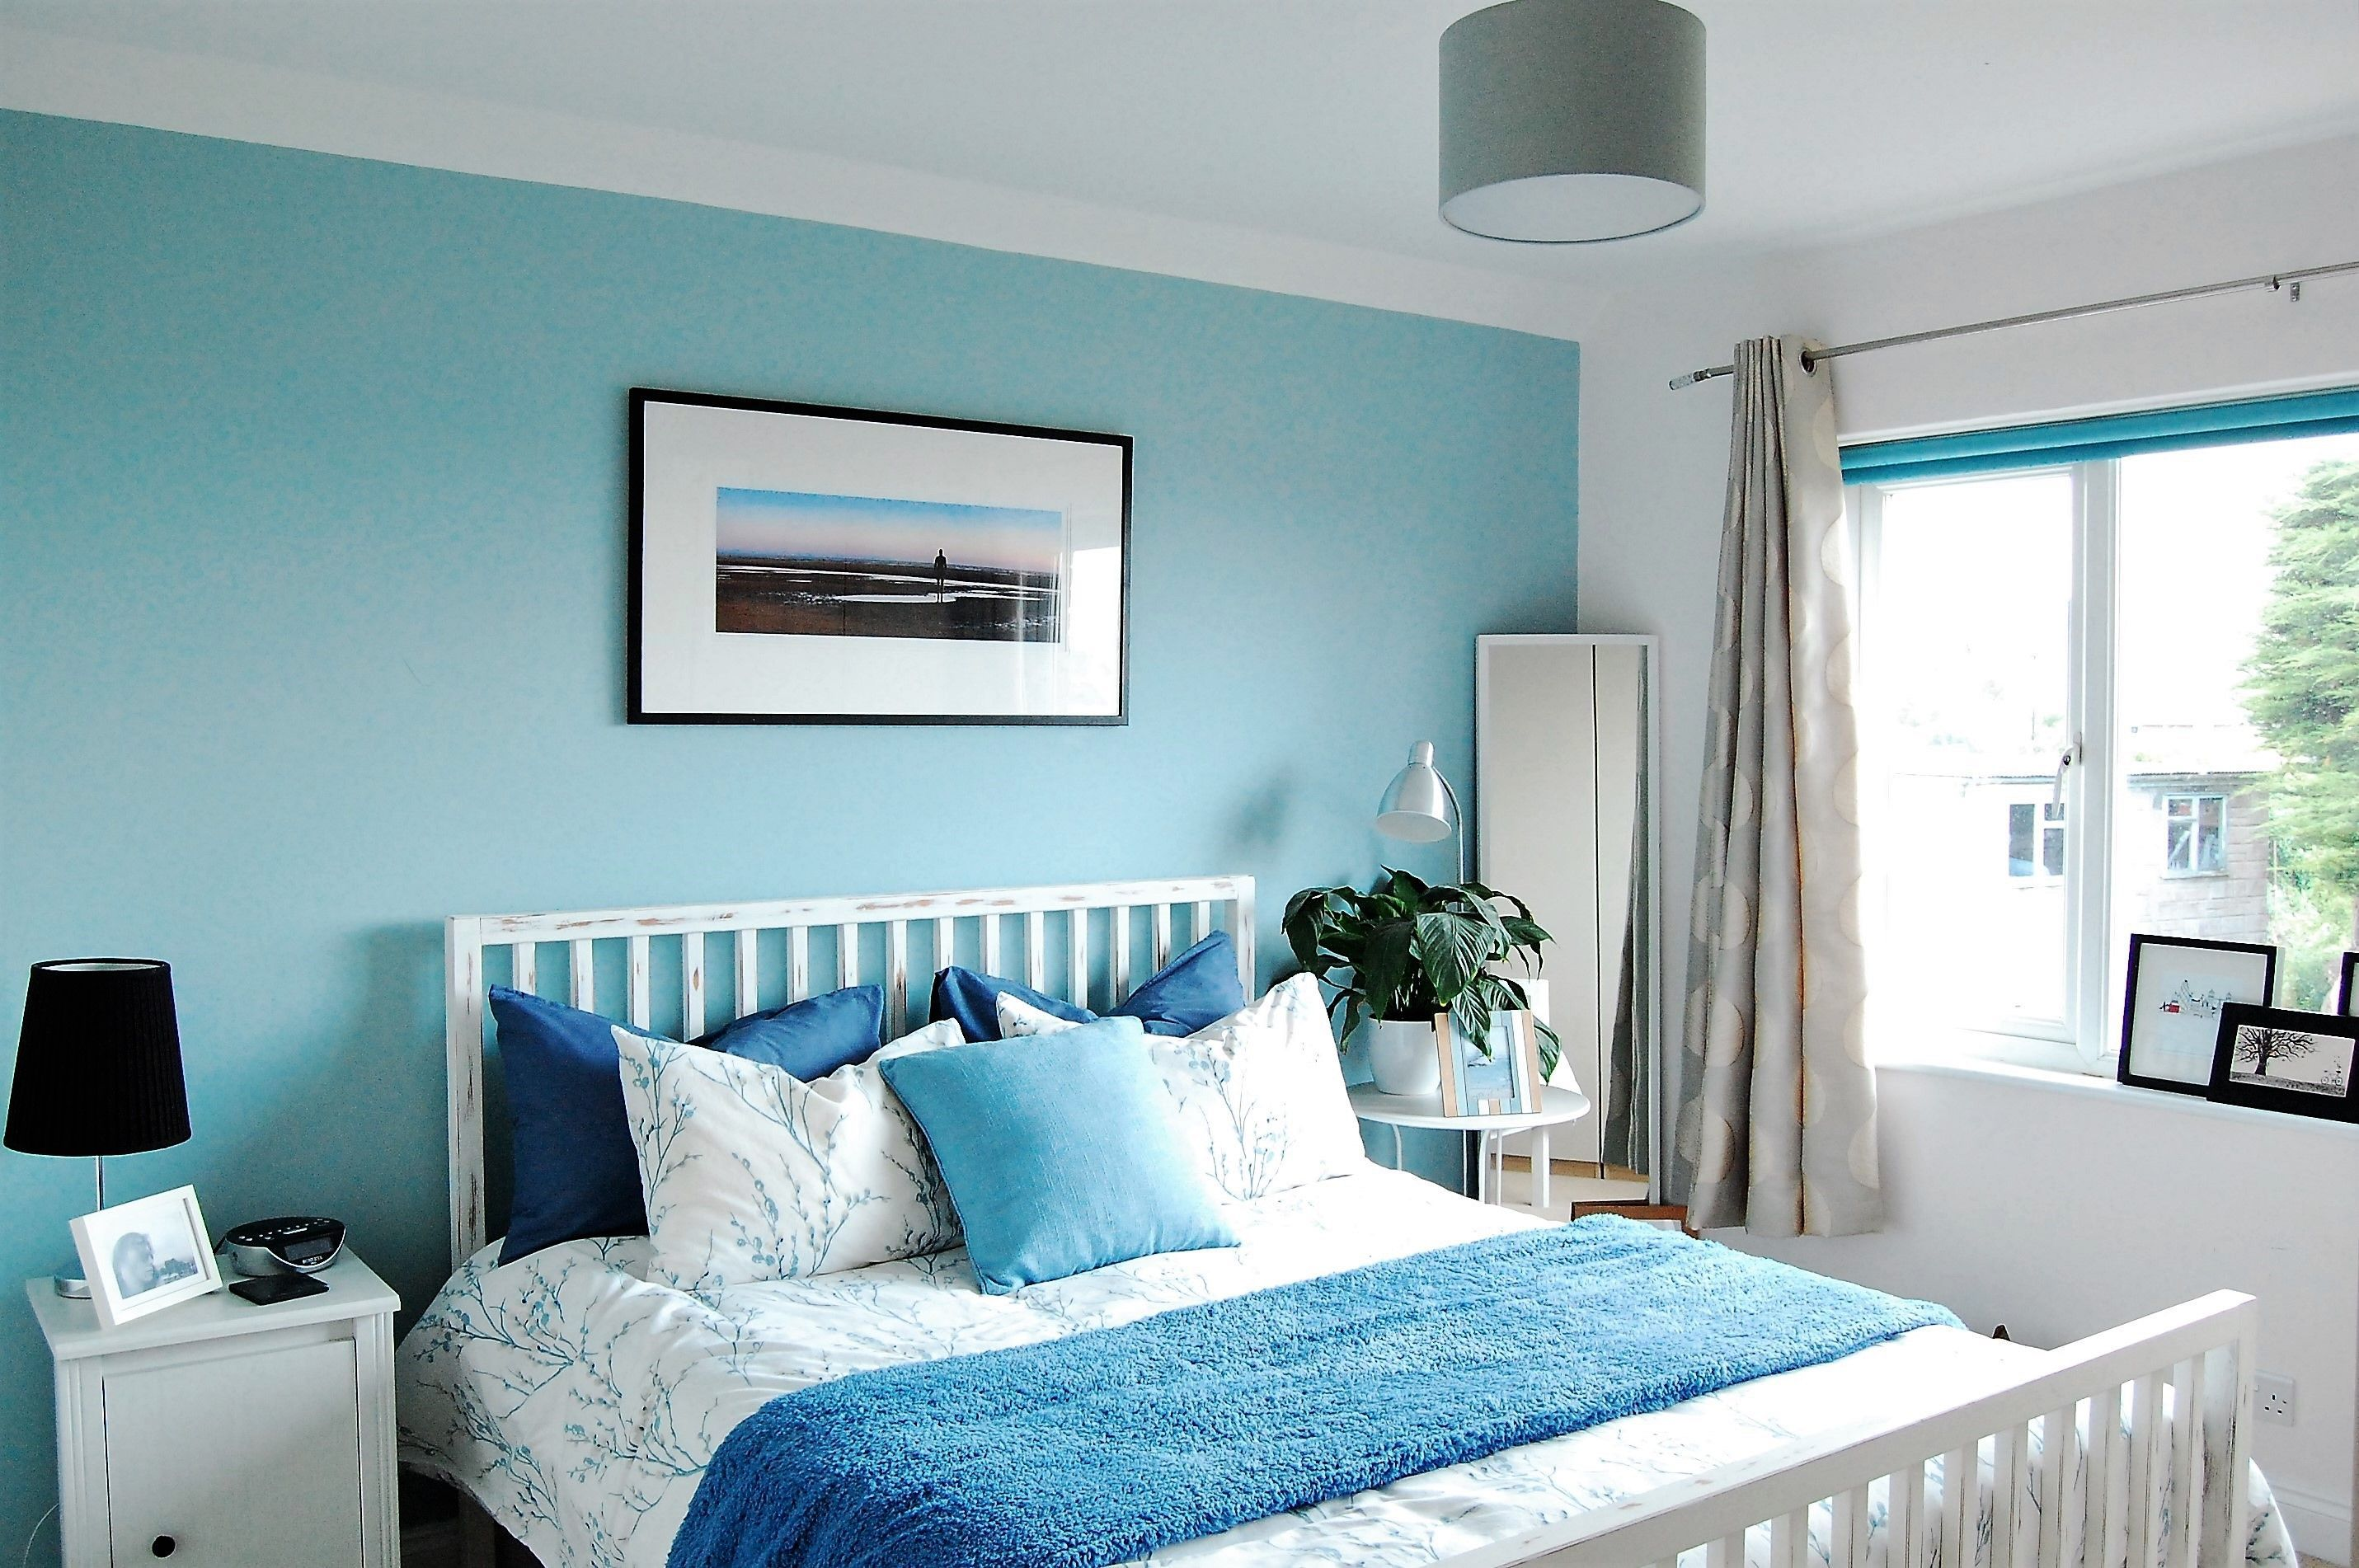 Blue bedroom by the sea, blue cushions, light blue bedroom ...